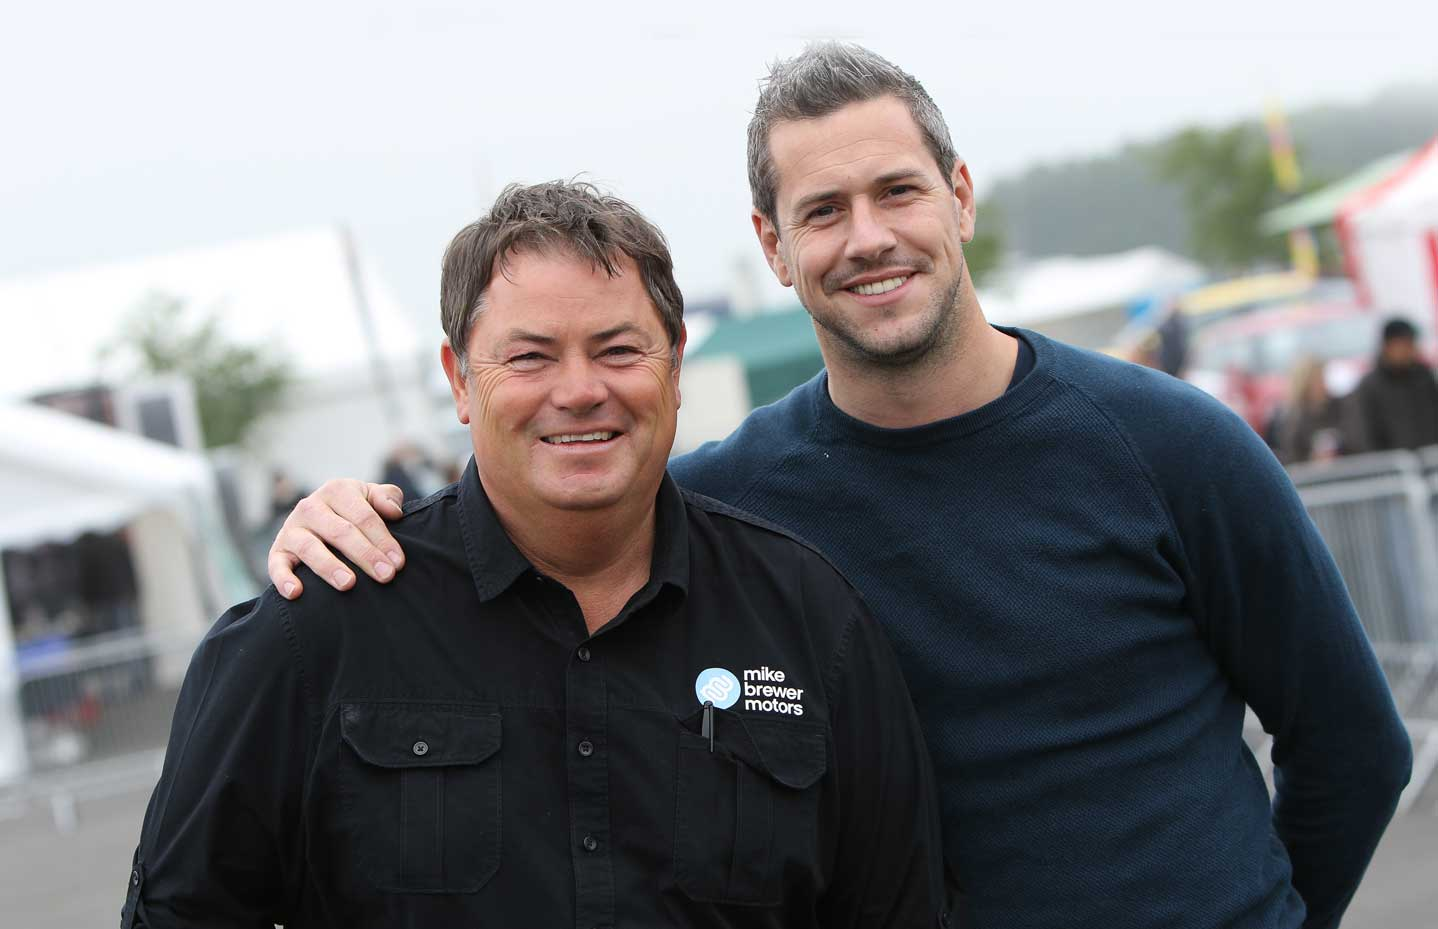 Ant Anstead joins Mike Brewer as new co-host and lead mechanic of Wheeler Dealers